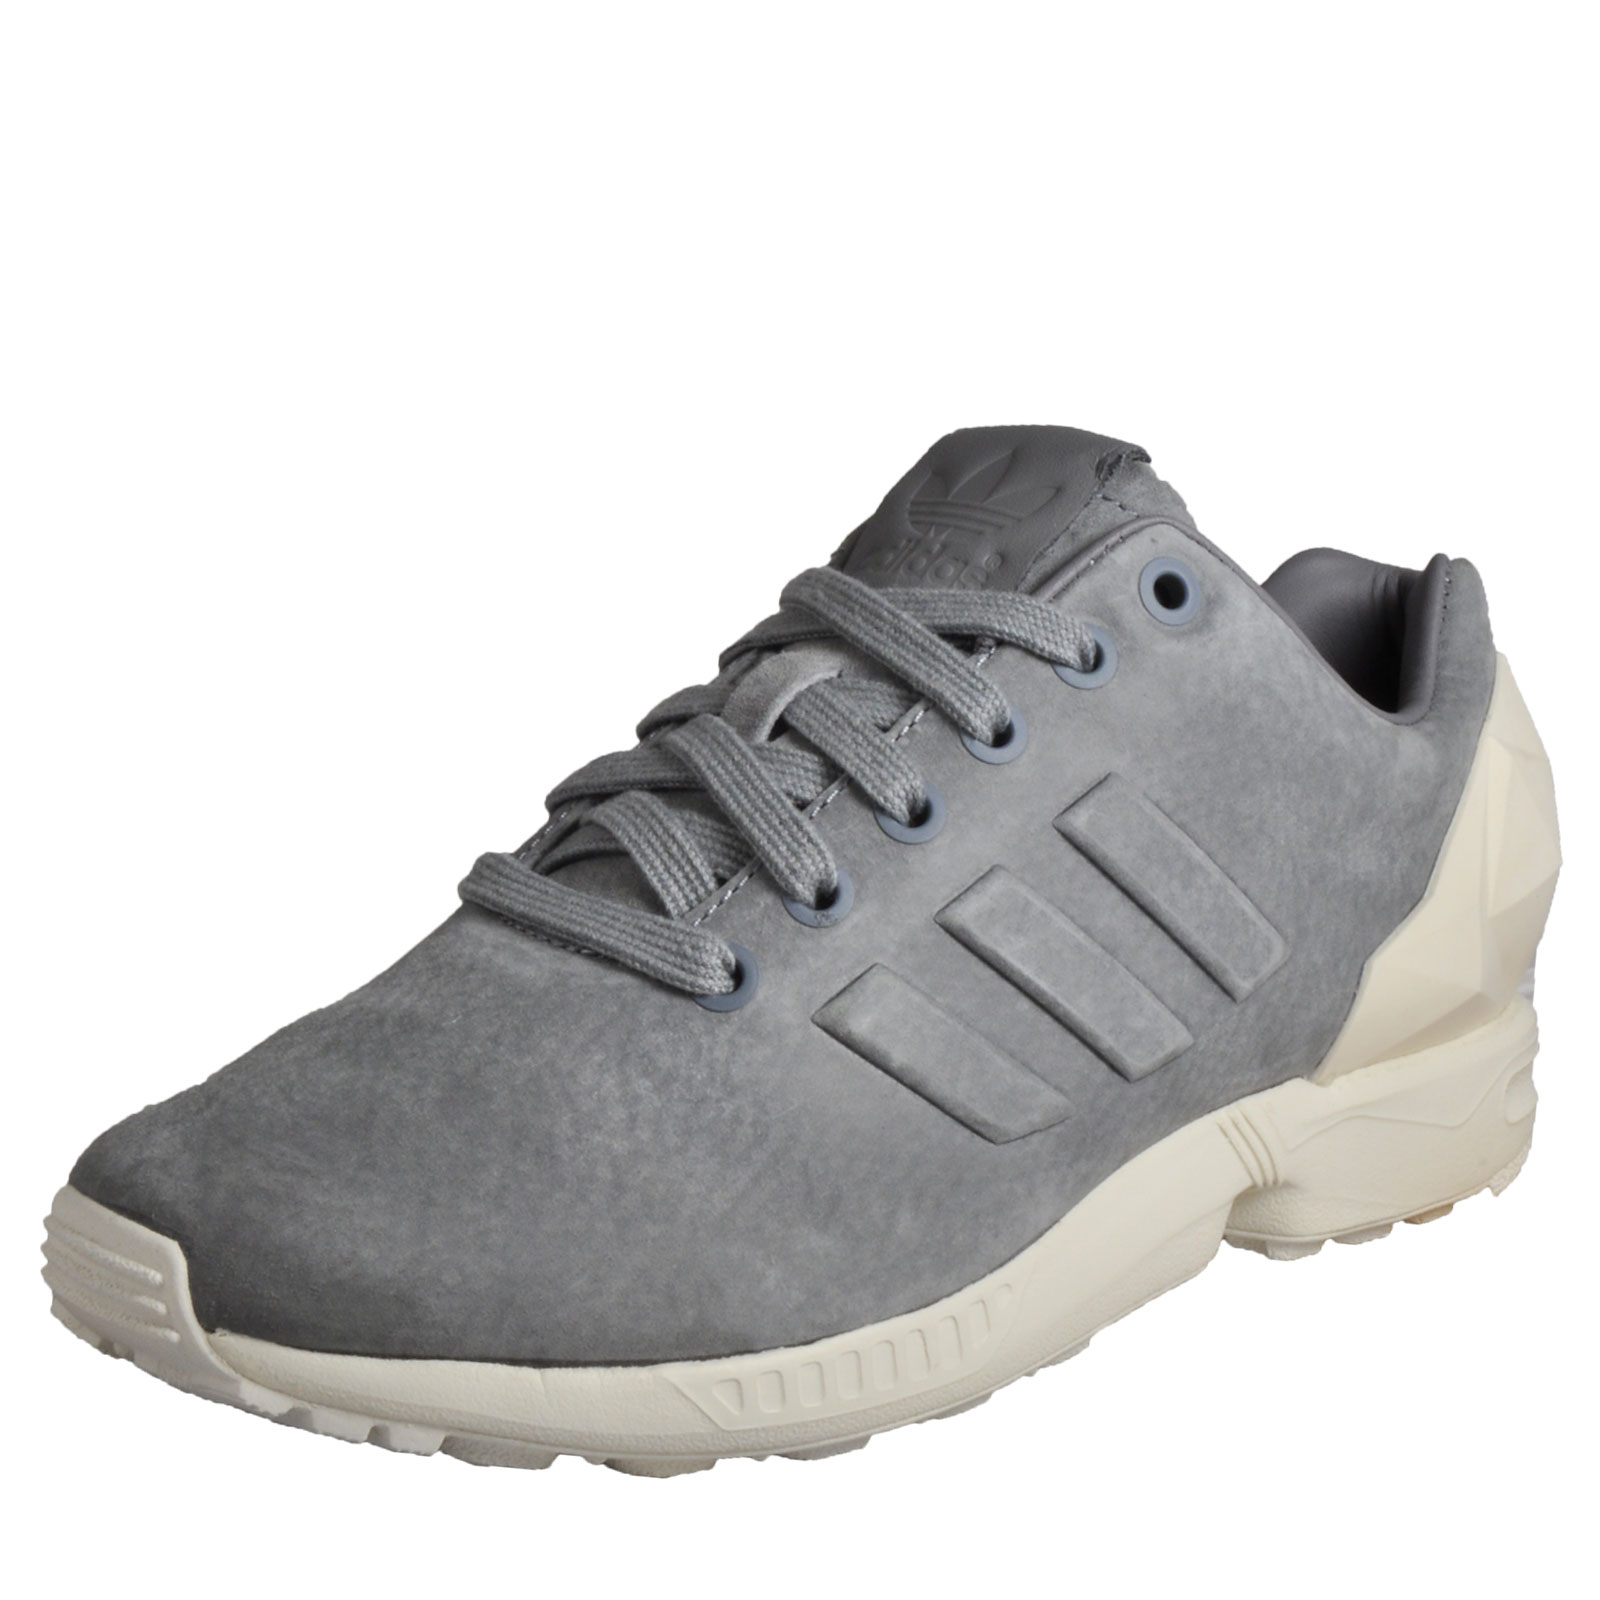 super popular 7f59b 74fd0 Adidas Originals ZX Flux Jewel Women s Classic Casual Retro Trainers Grey